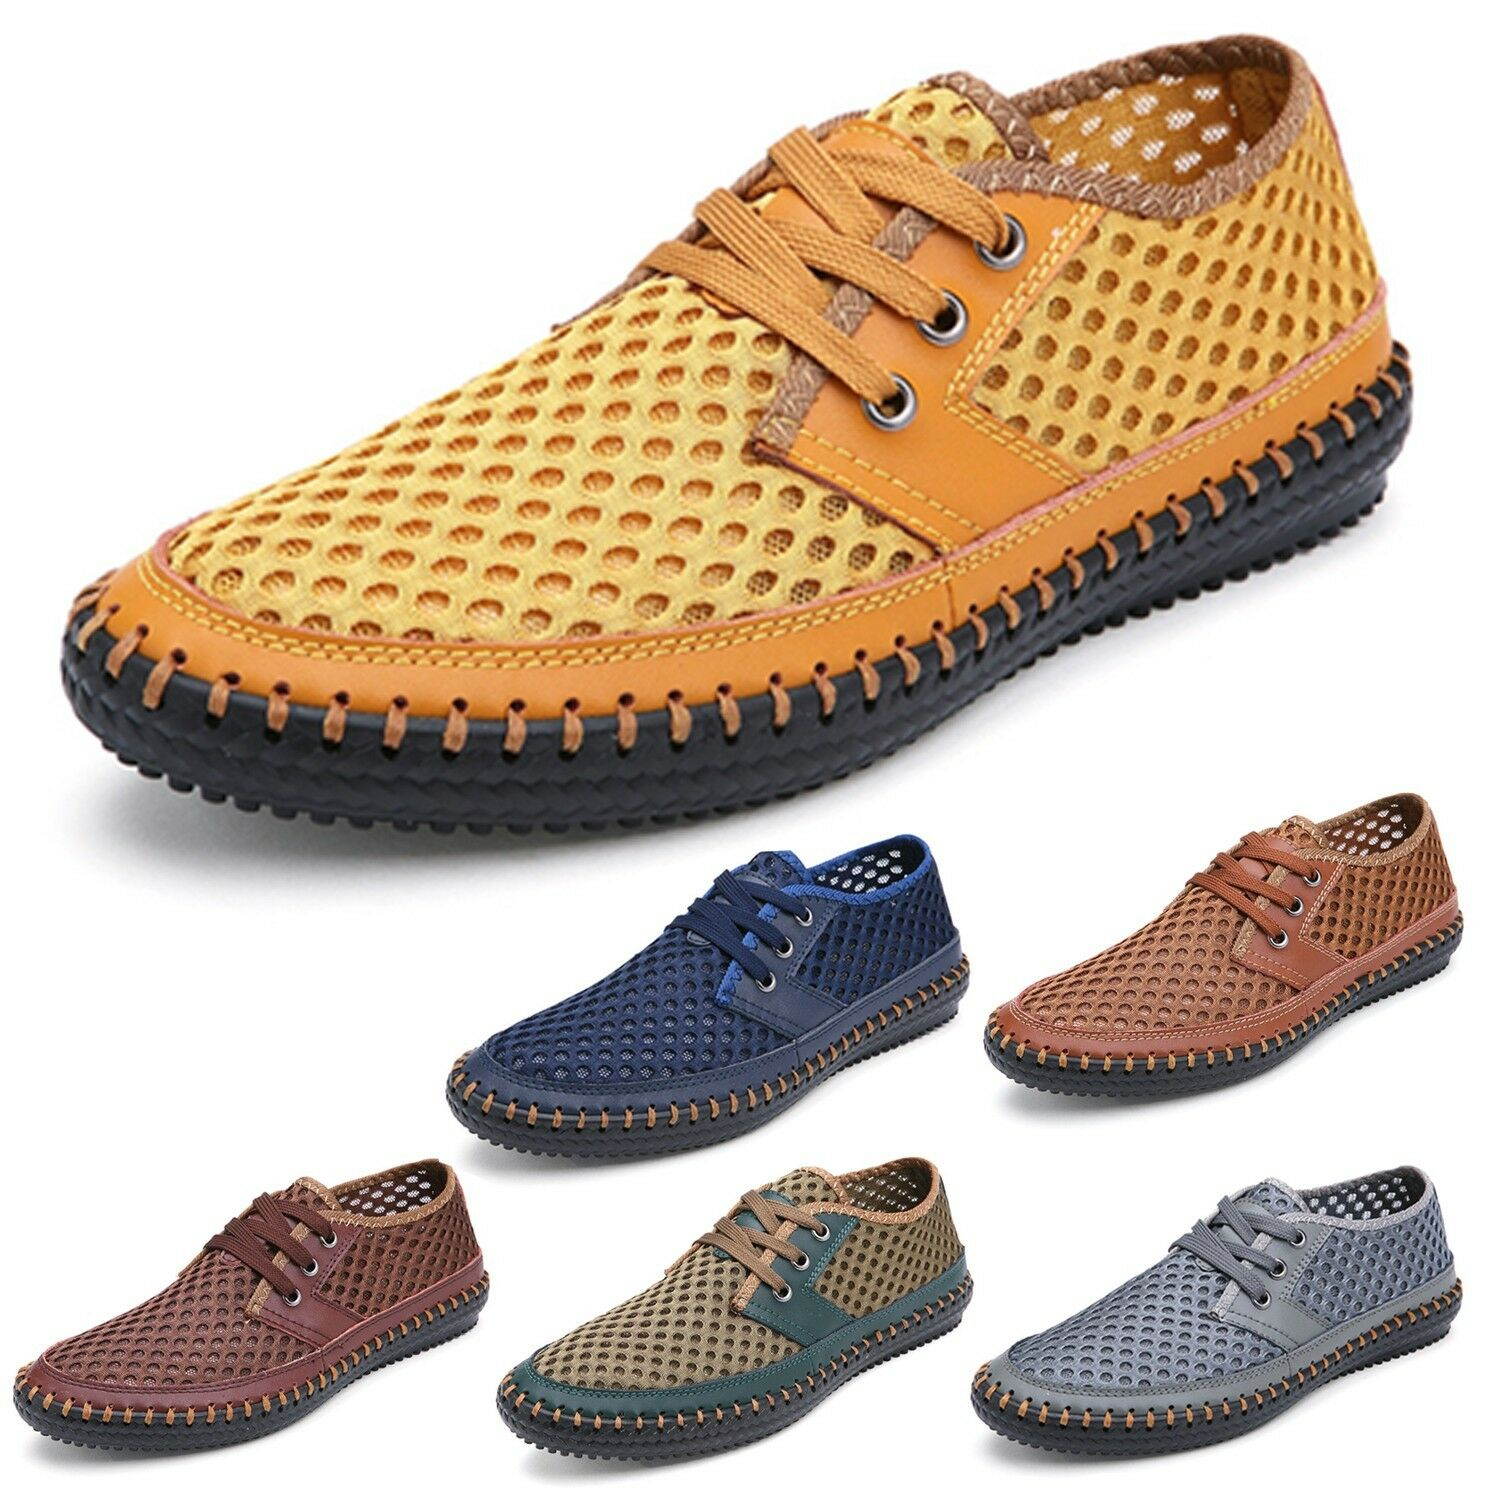 Mens Real leather loafers Sneakers Breathable Lace up Oxford shoes size tata